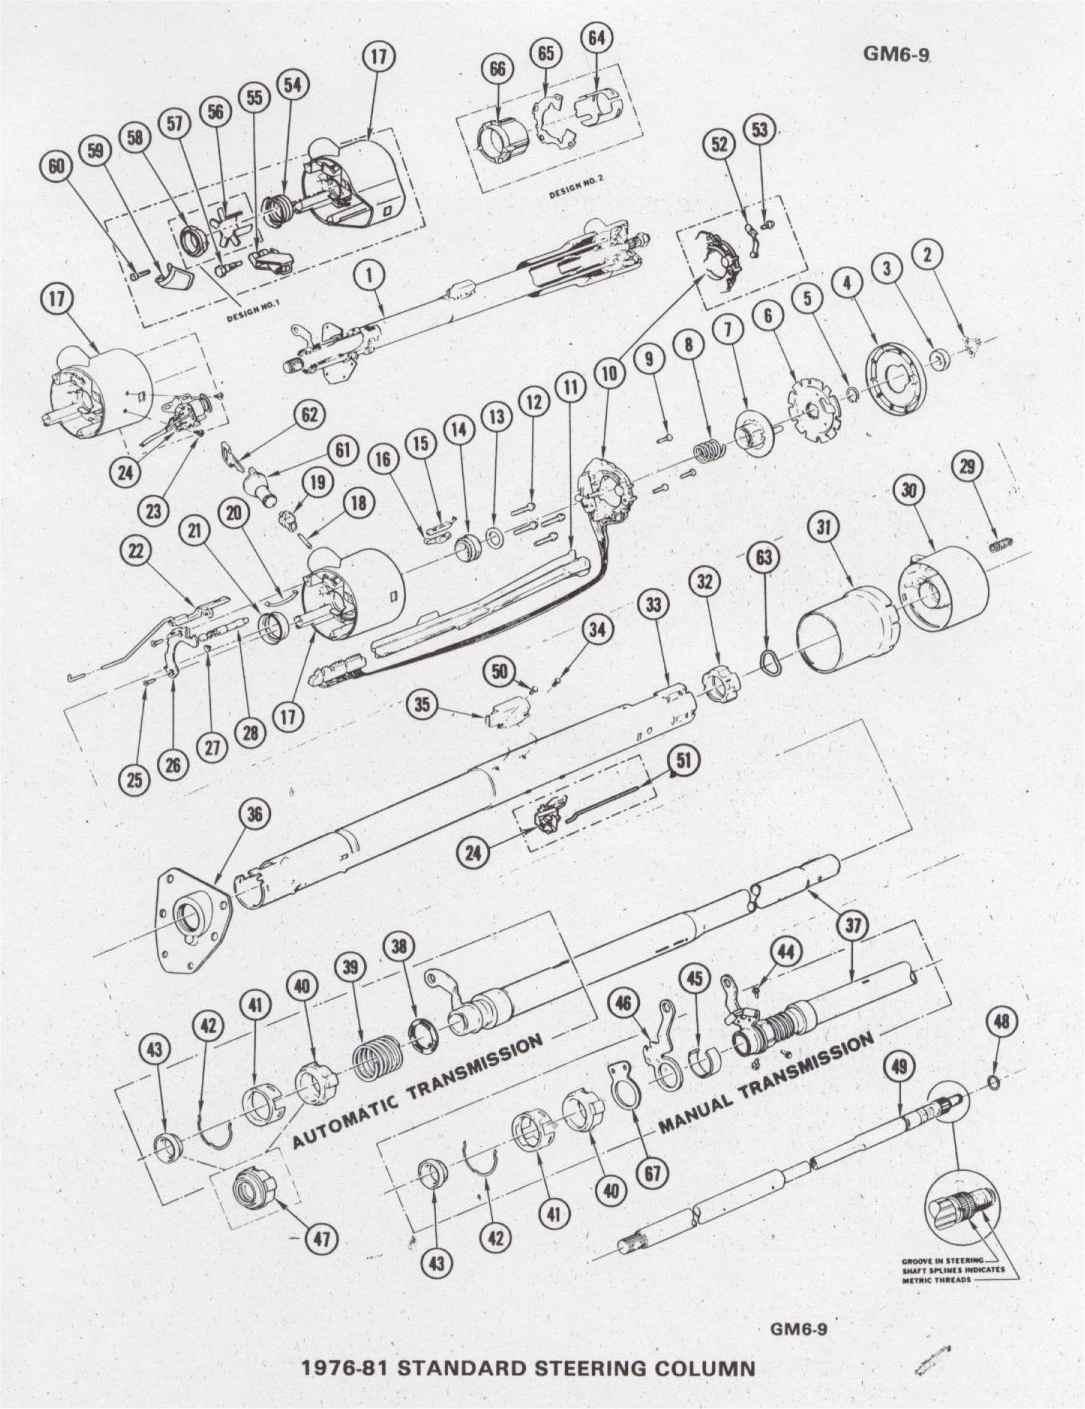 2000 Camaro Steering Column Schematics